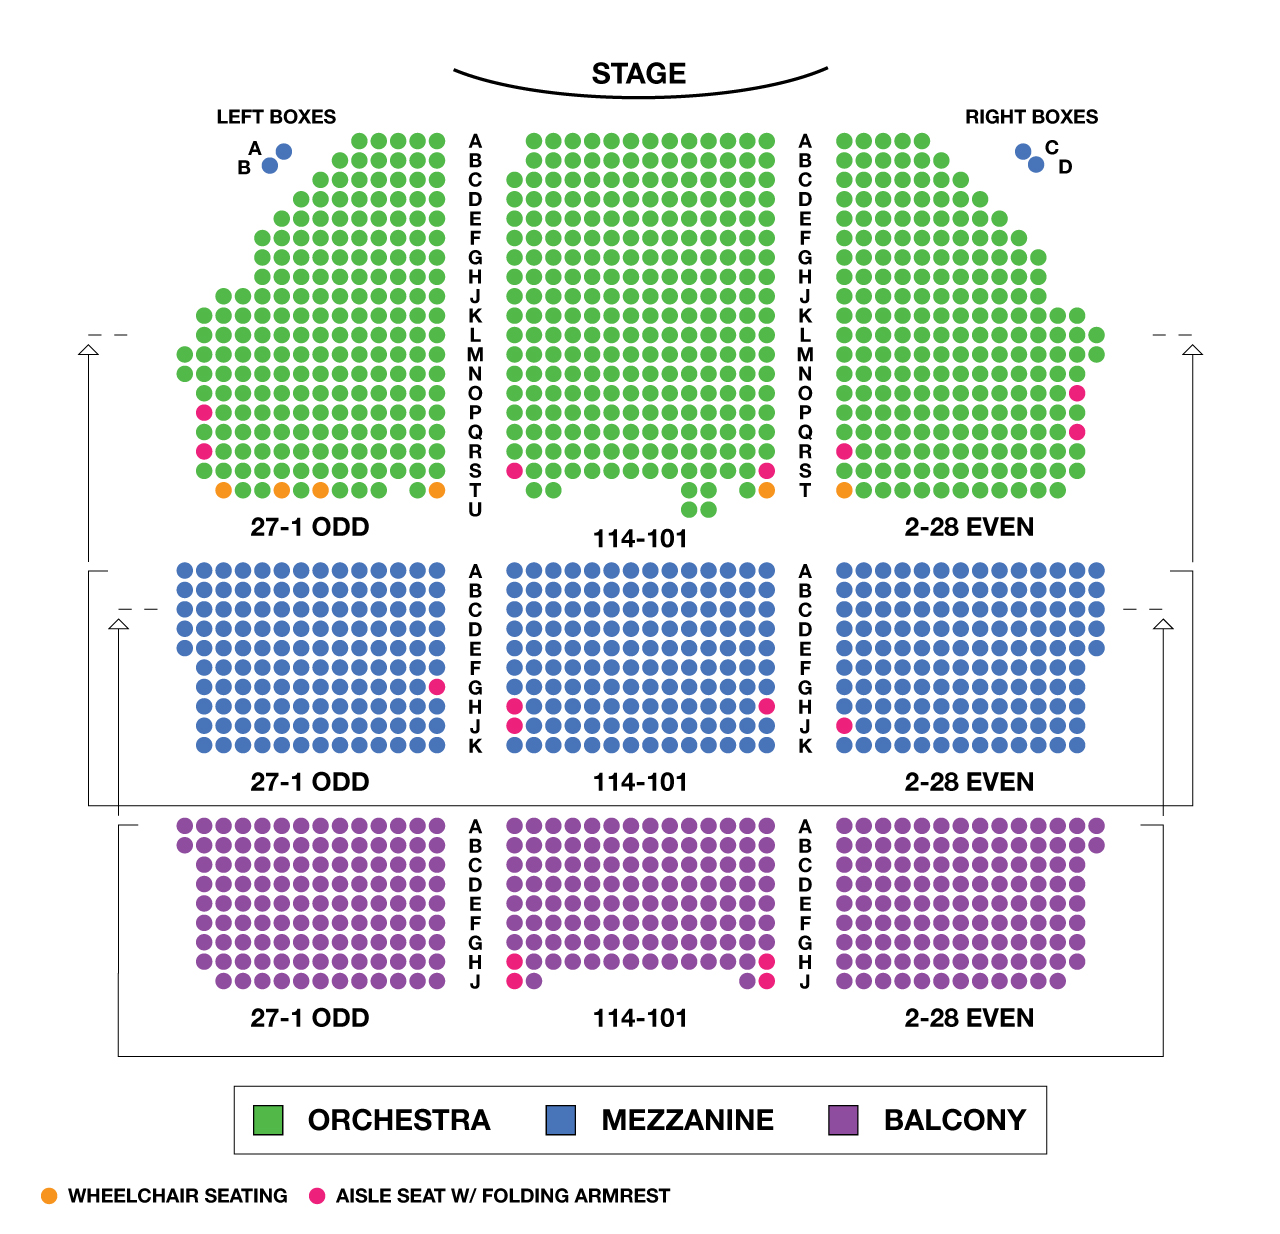 Shubert Theatre Large Broadway Seating Charts